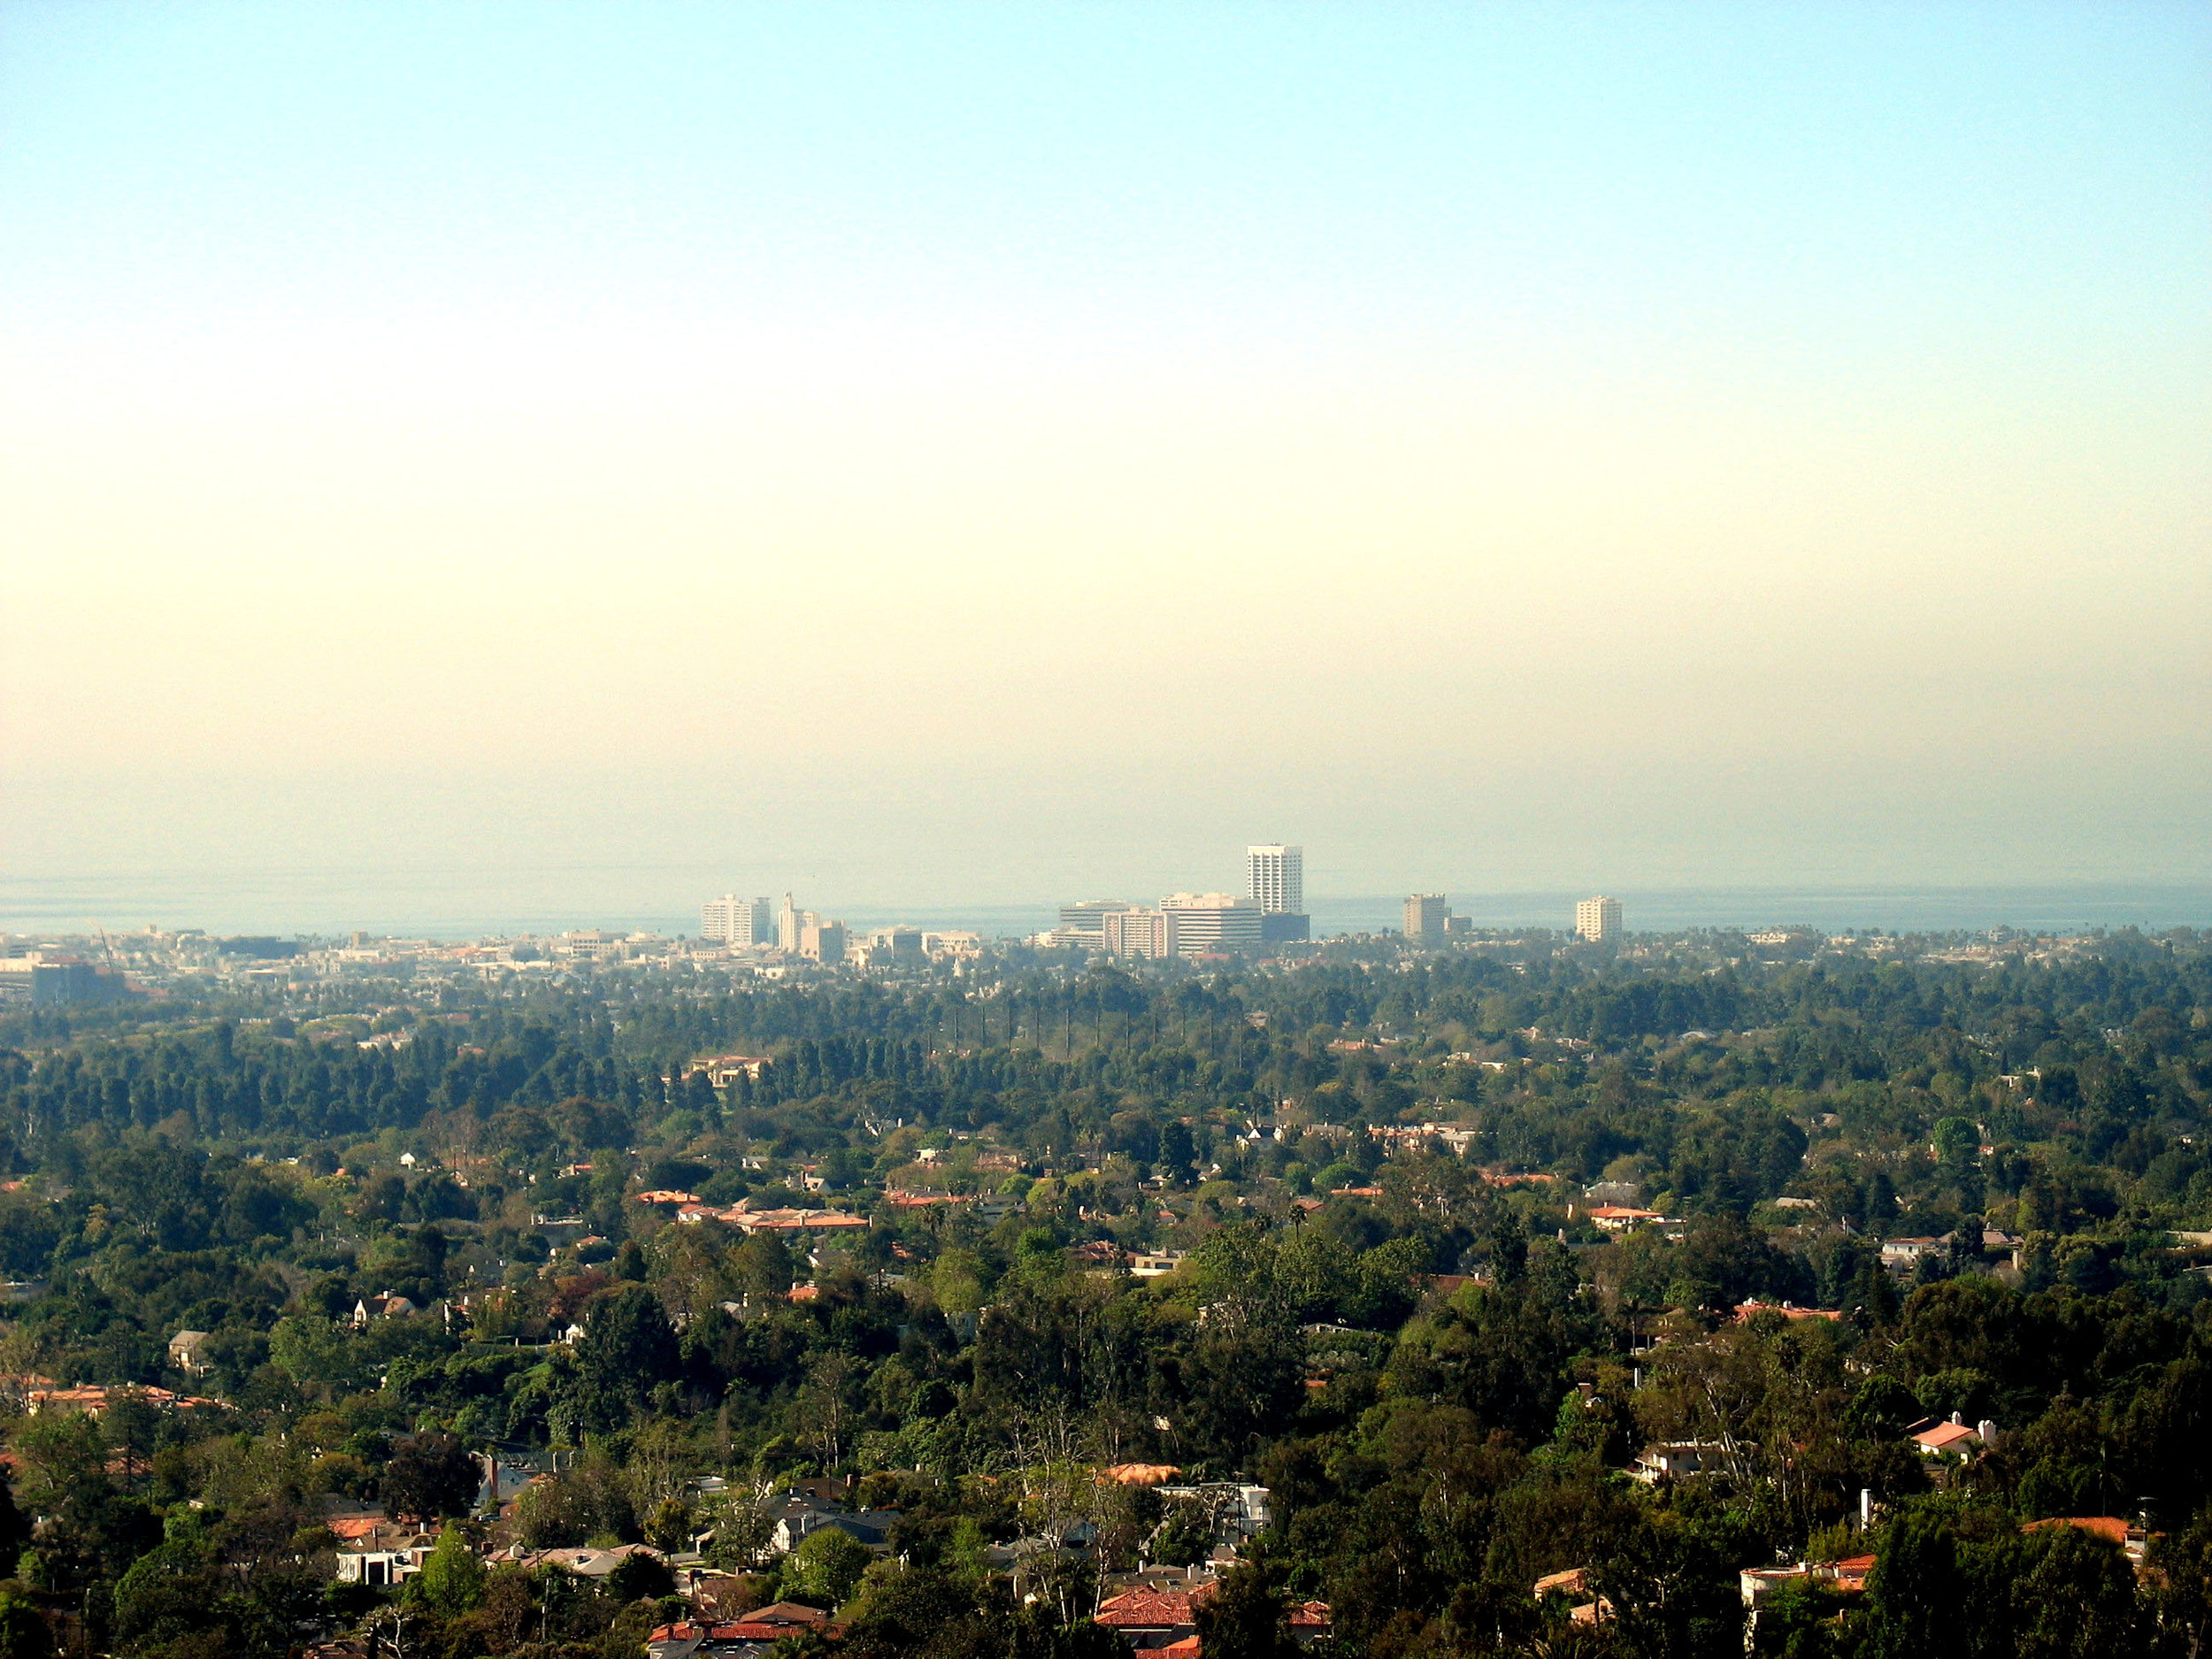 Santa Monica from the Getty Museum by Rennett Stowe via  Wikimedia Commons